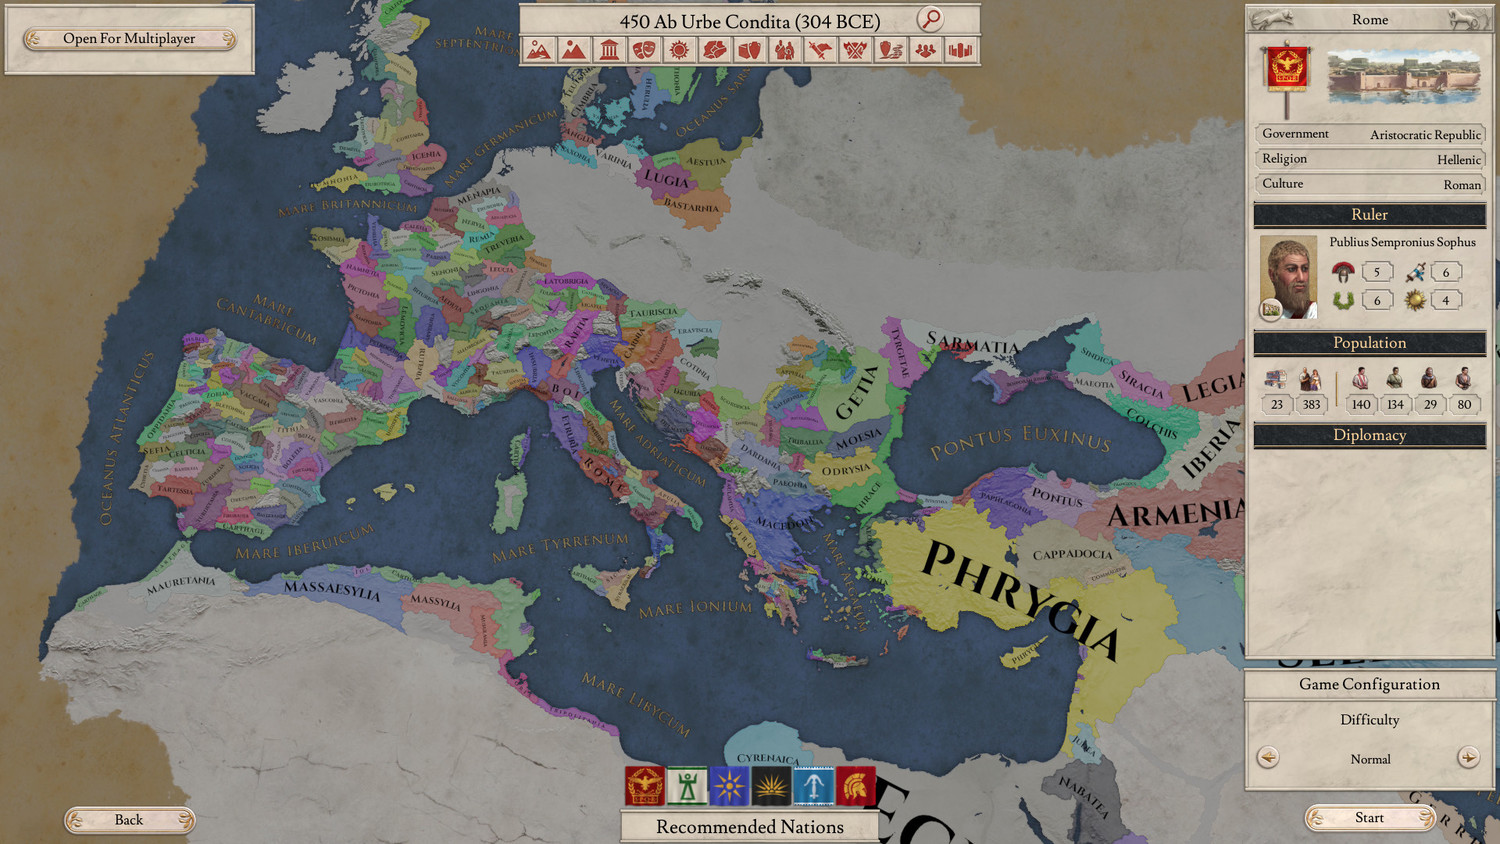 Screenshot for the game Imperator: Rome - Deluxe Edition v.2.02 rc1 [GOG]